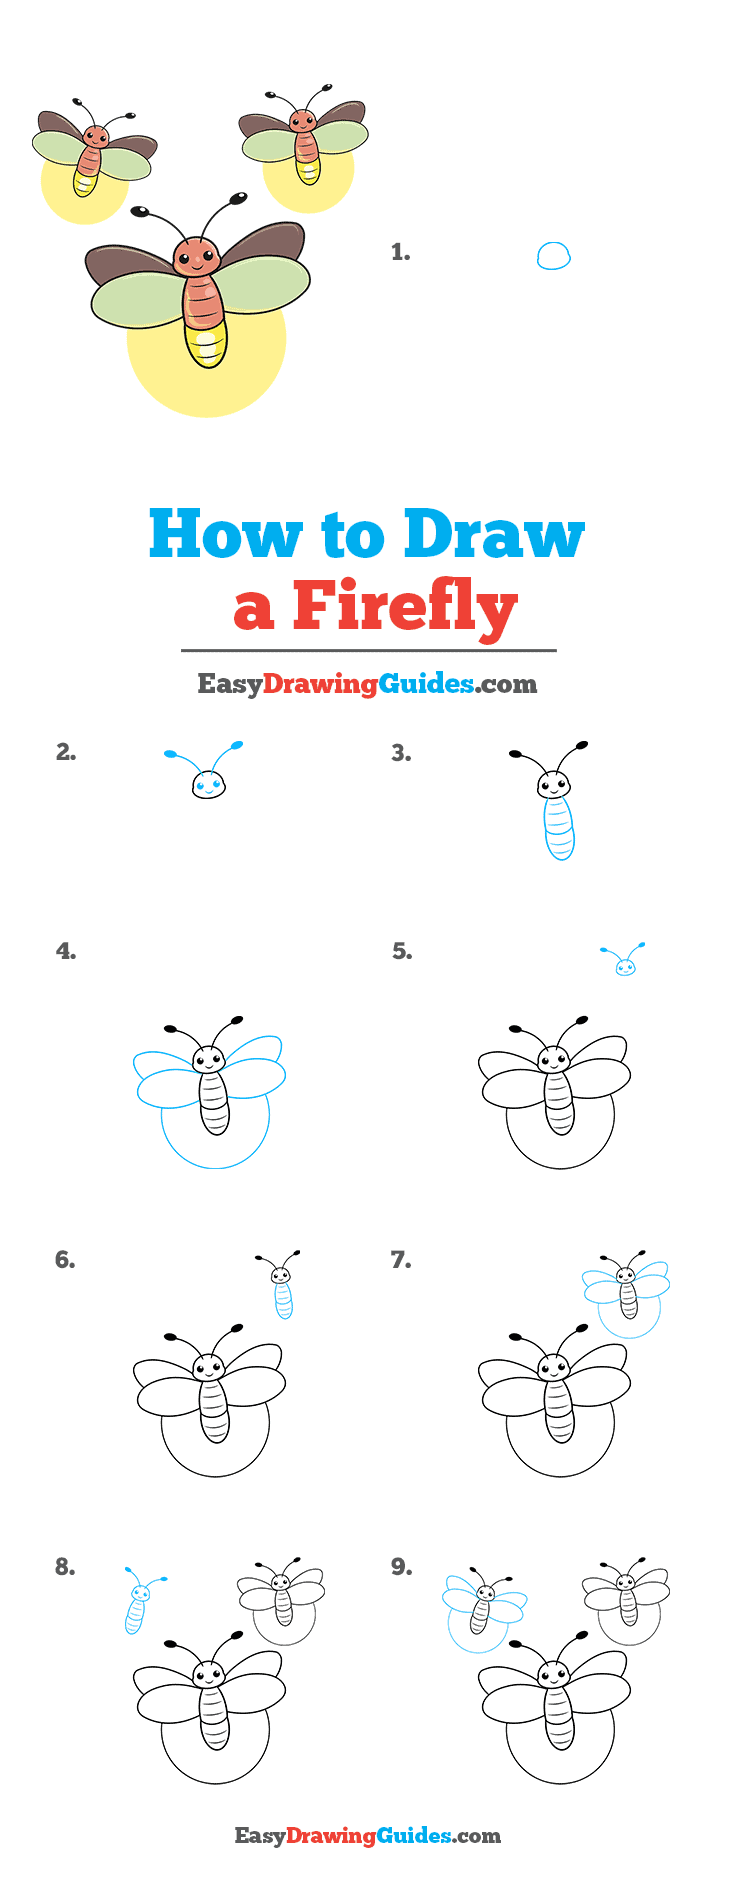 How to Draw a Firefly Step by Step Tutorial Image